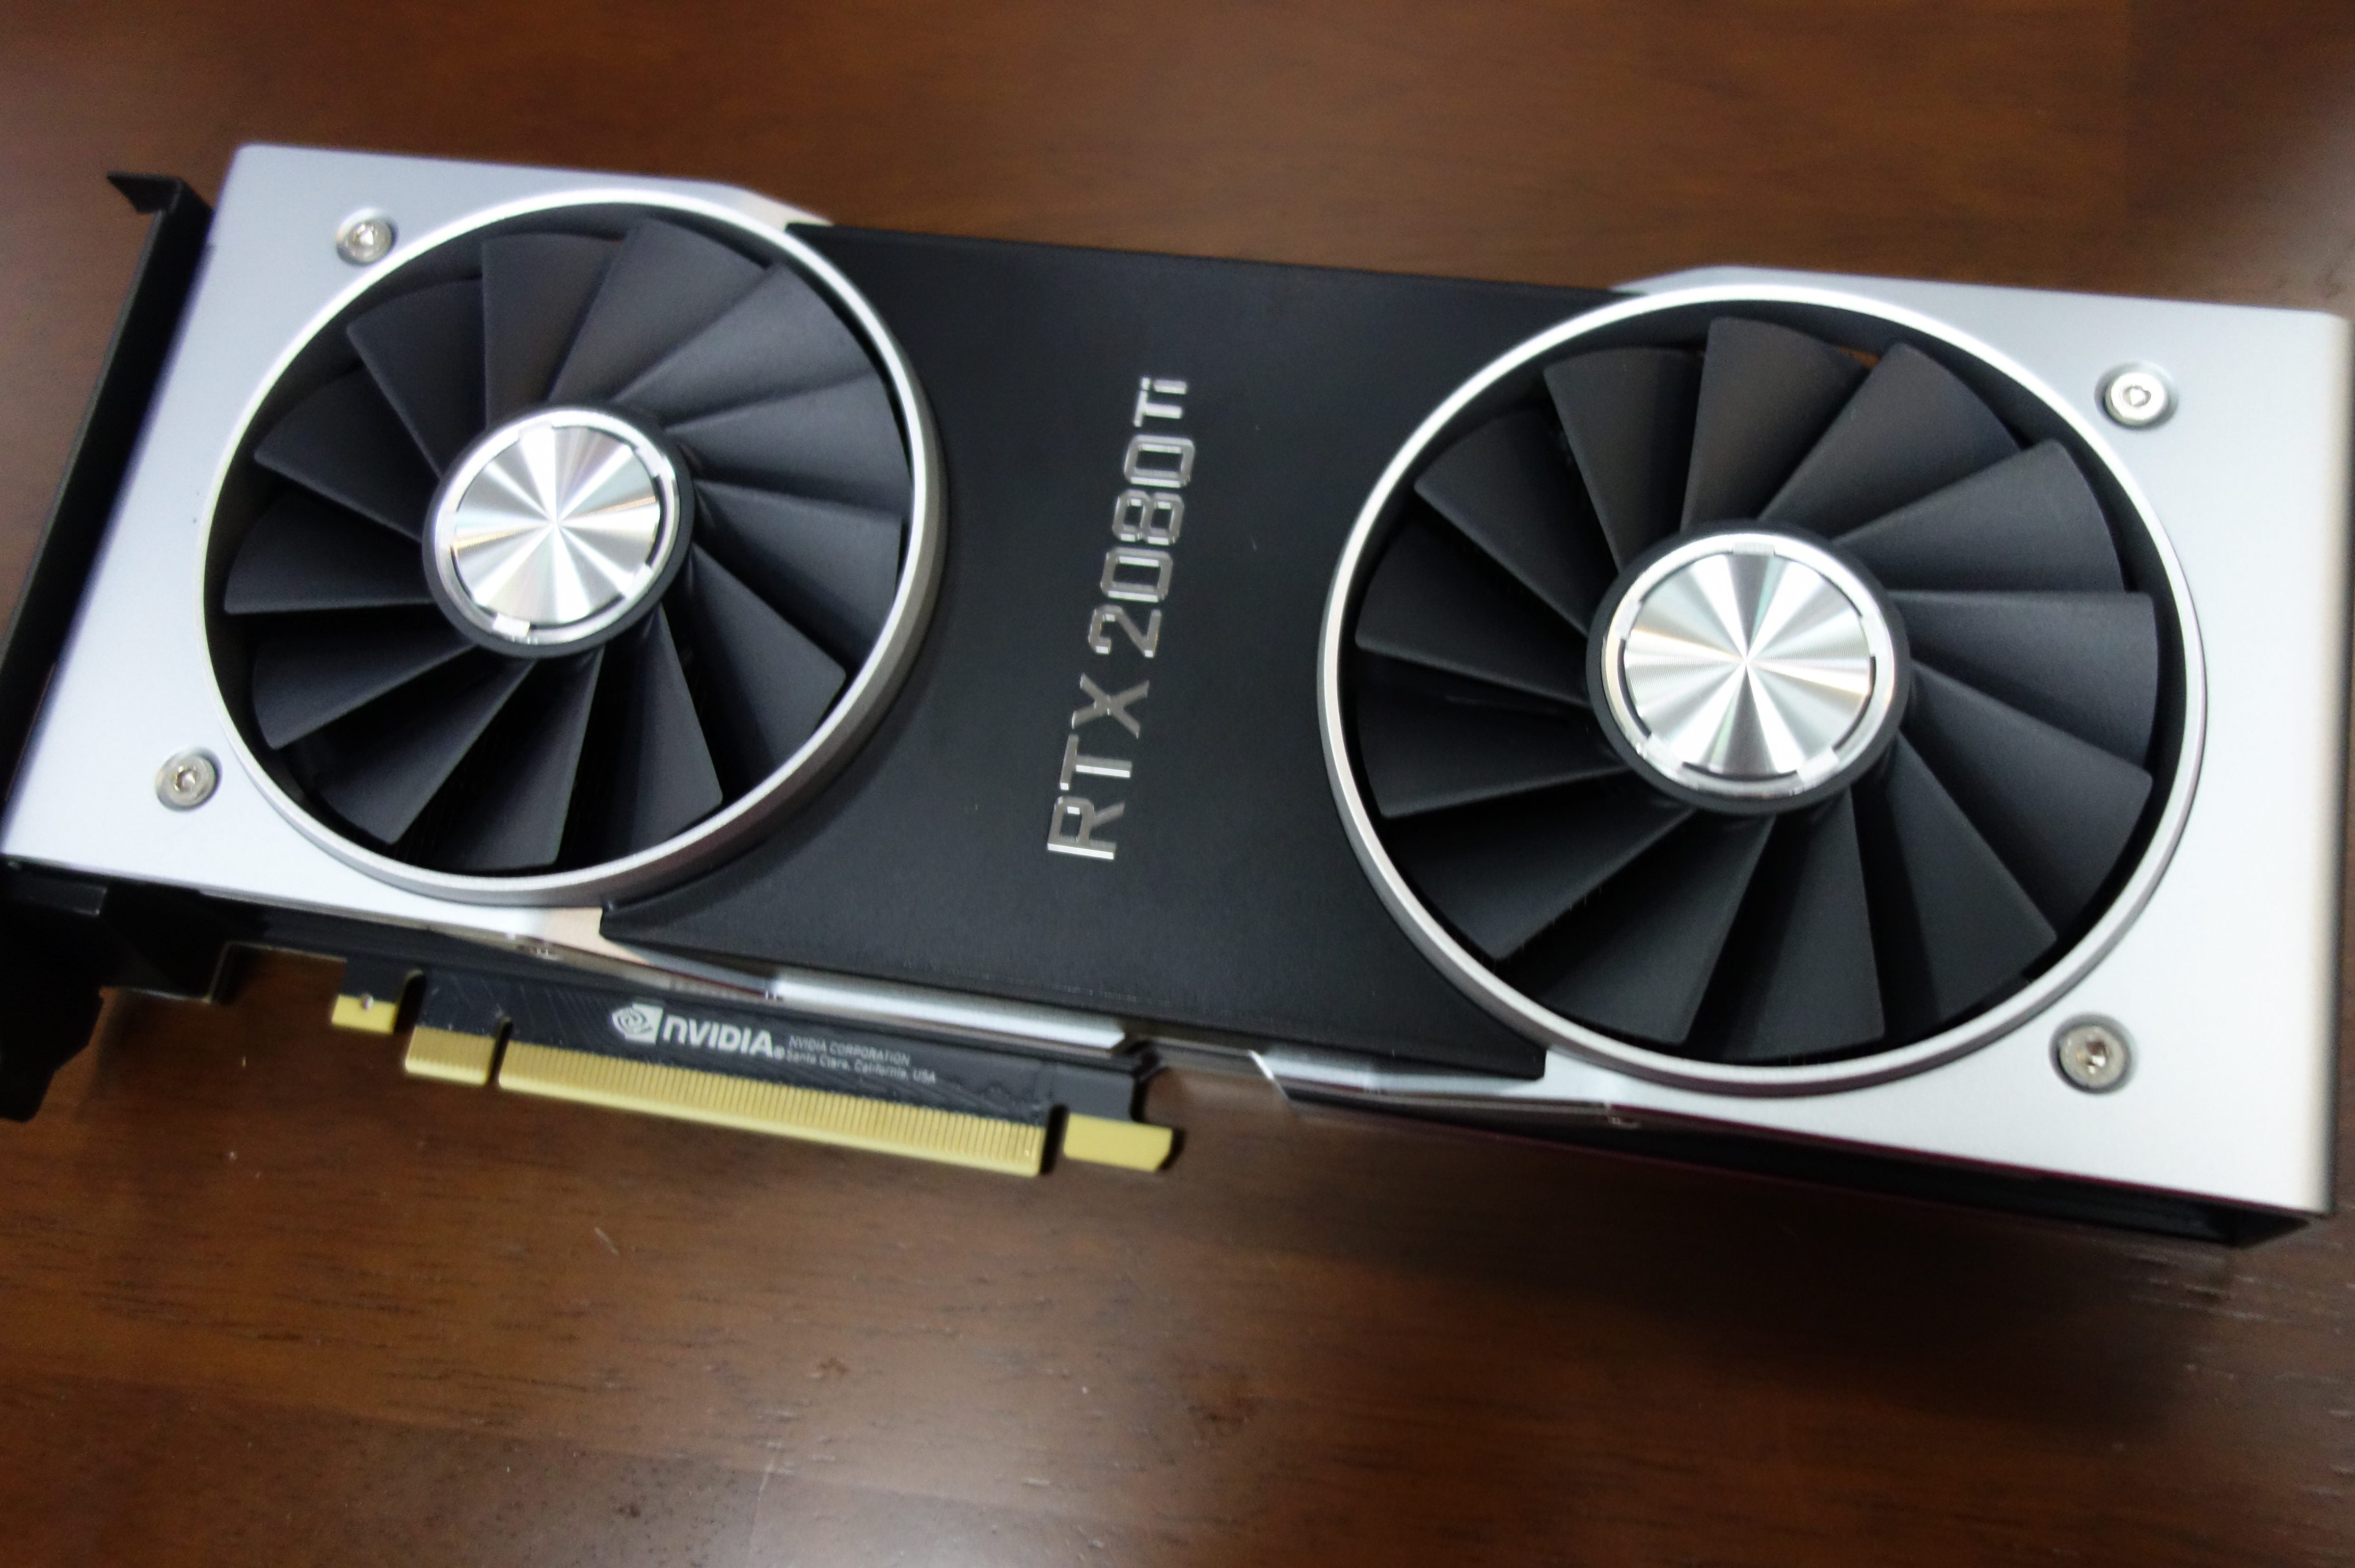 Nvidia RTX 2080 Ti Review | Trusted Reviews